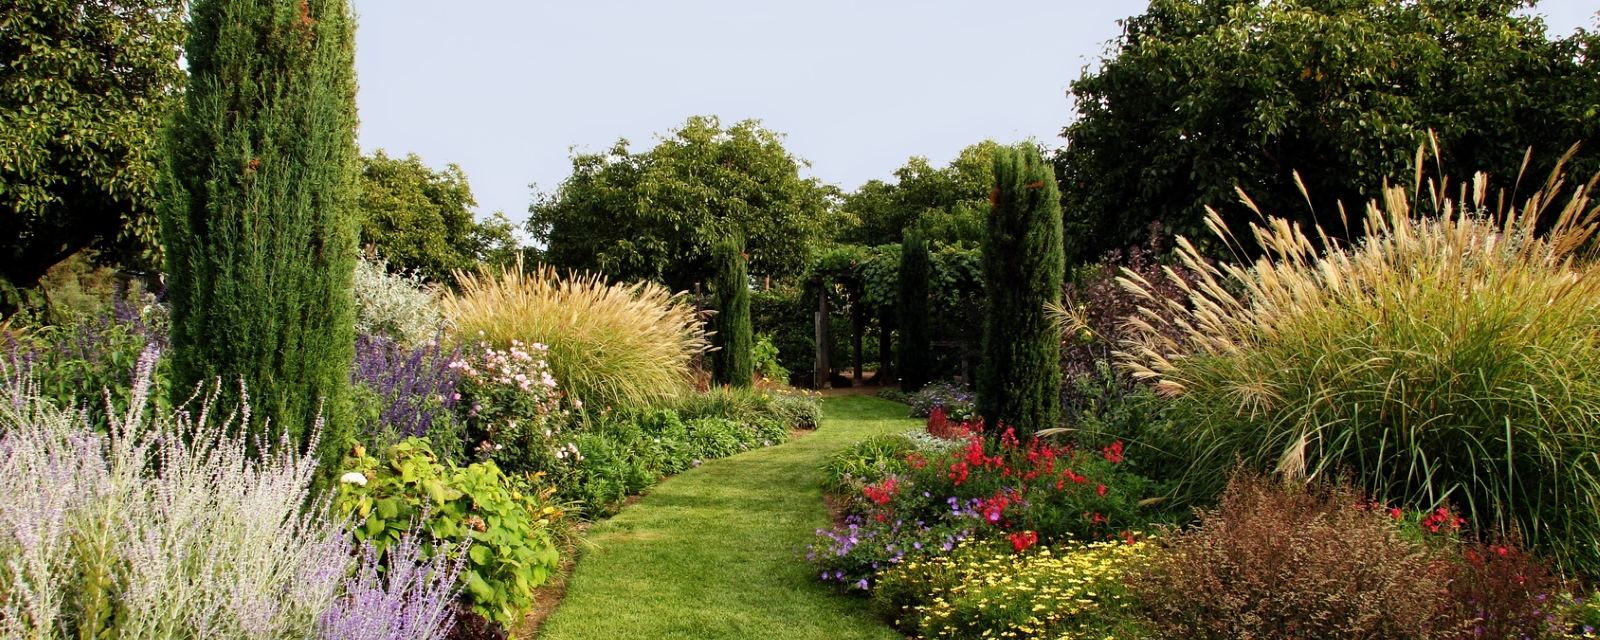 Professional garden services tree surgeons lawn care for Home gardening services